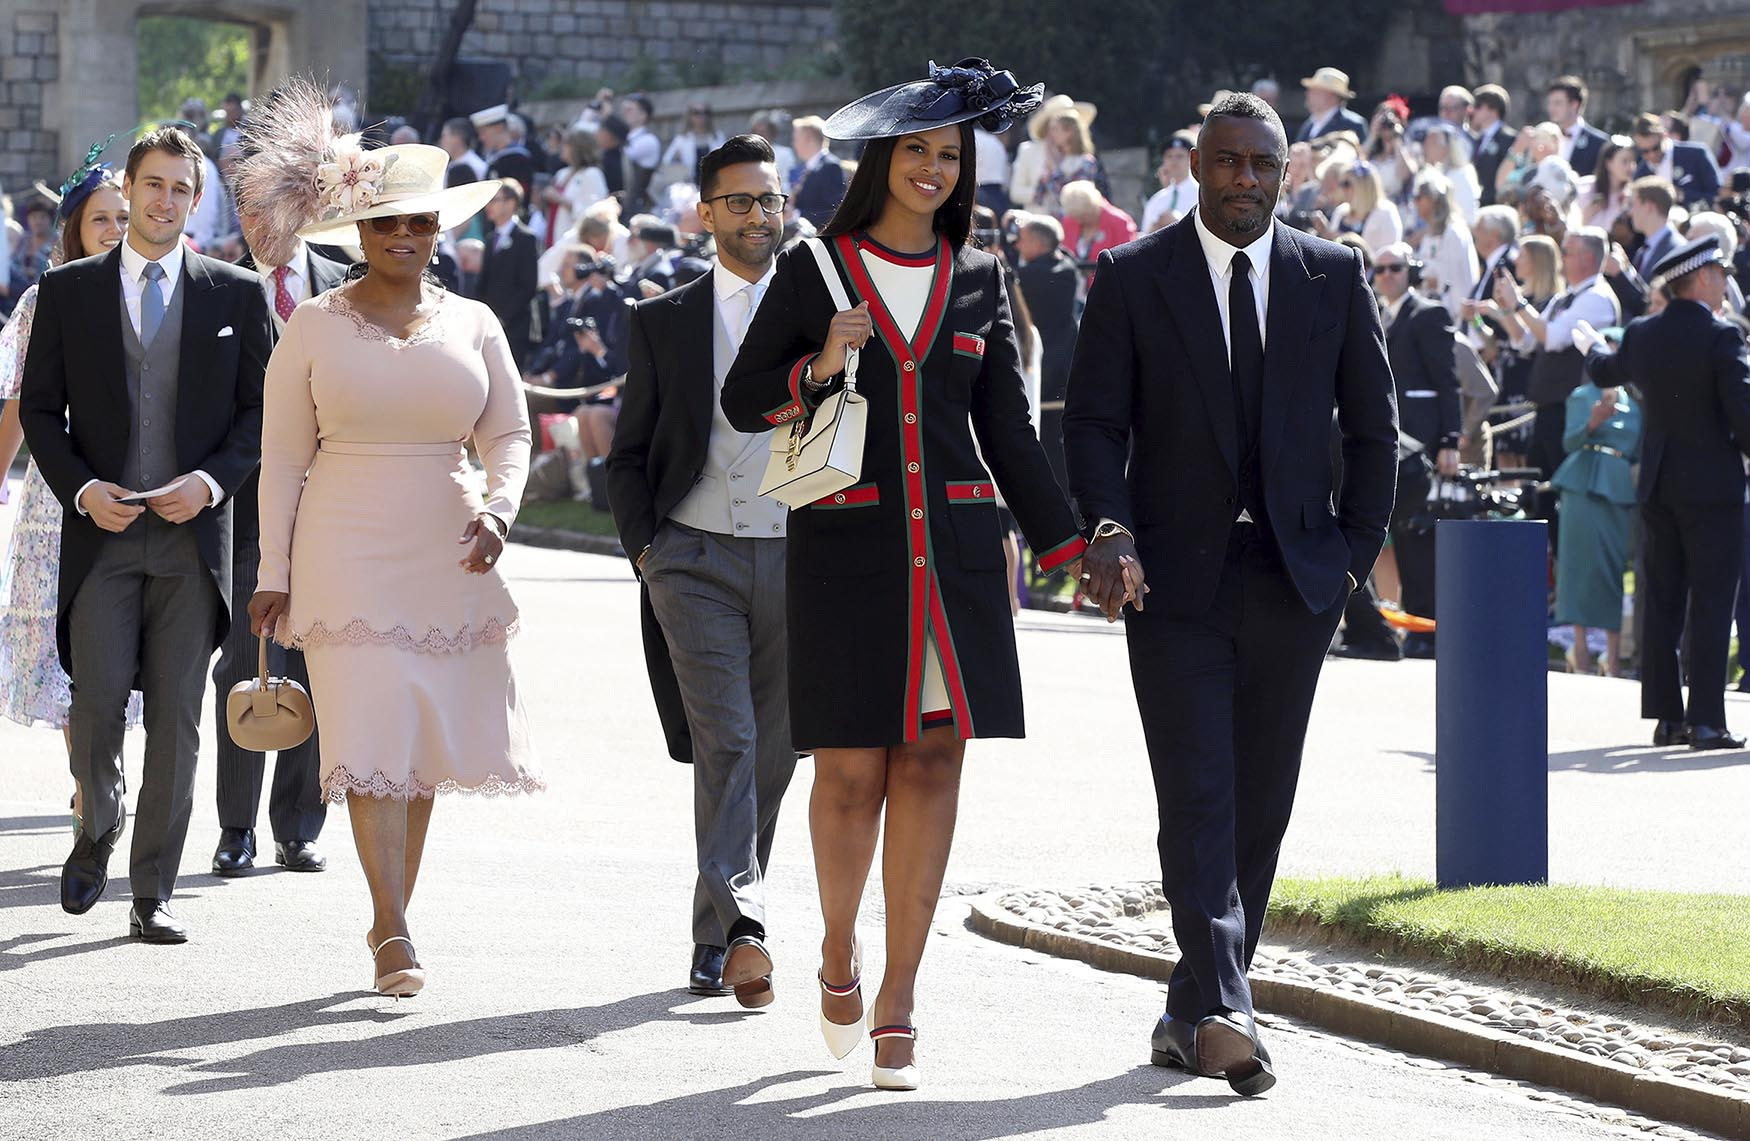 British actor Idris Elba, right, arrives with his fiancee Sabrina Dhowre, followed by Oprah Winfrey for the wedding ceremony of Prince Harry and Meghan Markle at St. George's Chapel in Windsor Castle in Windsor, near London, England, Saturday, May 19, 2018.